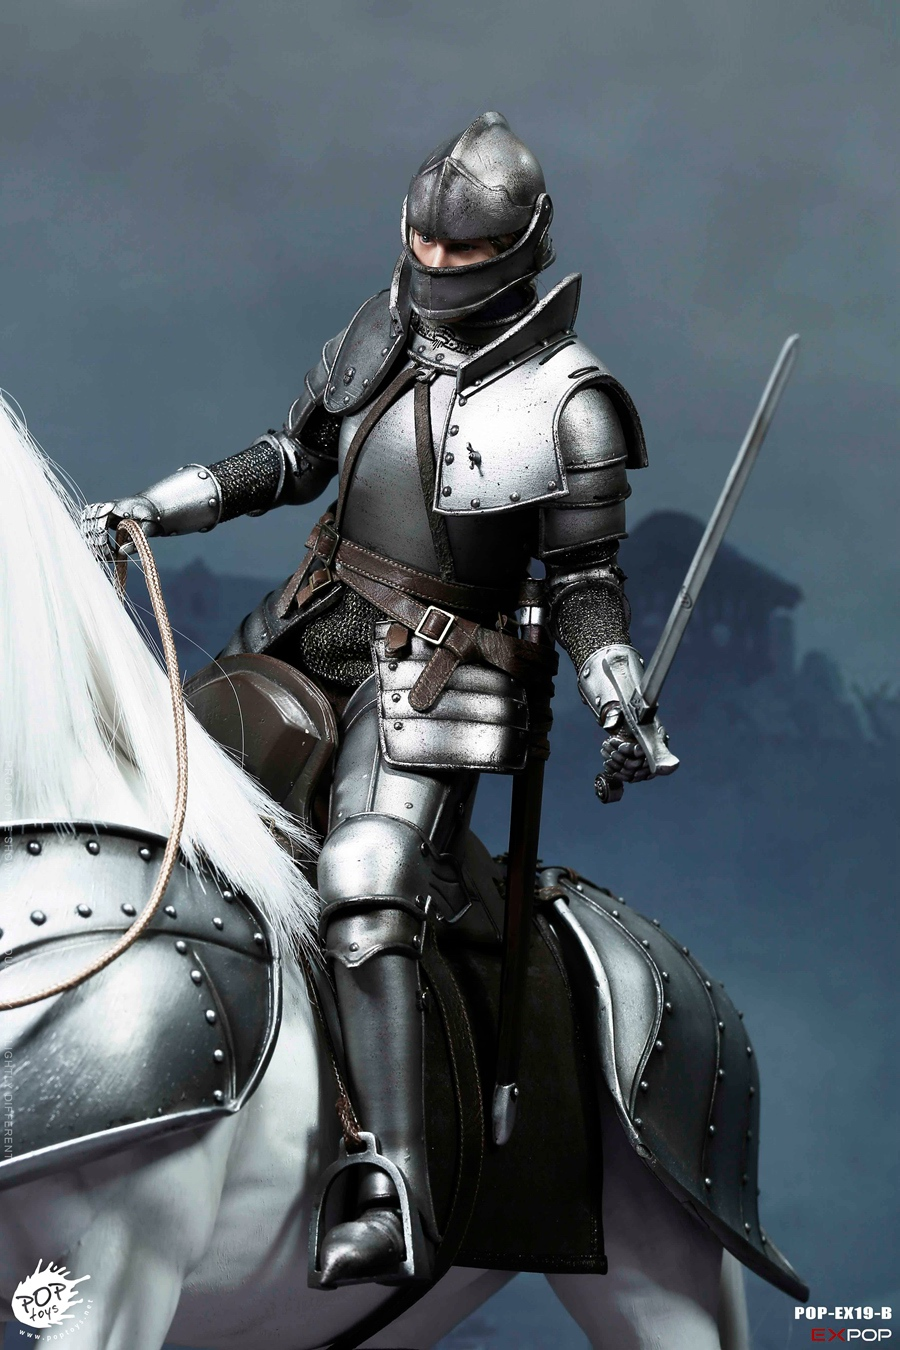 knight - NEW PRODUCT: POPTOYS New Products: 1/6 St. Knights - Assault Edition & Triumph Edition & Iron Armor (POP-EX19 ABC) 16461410